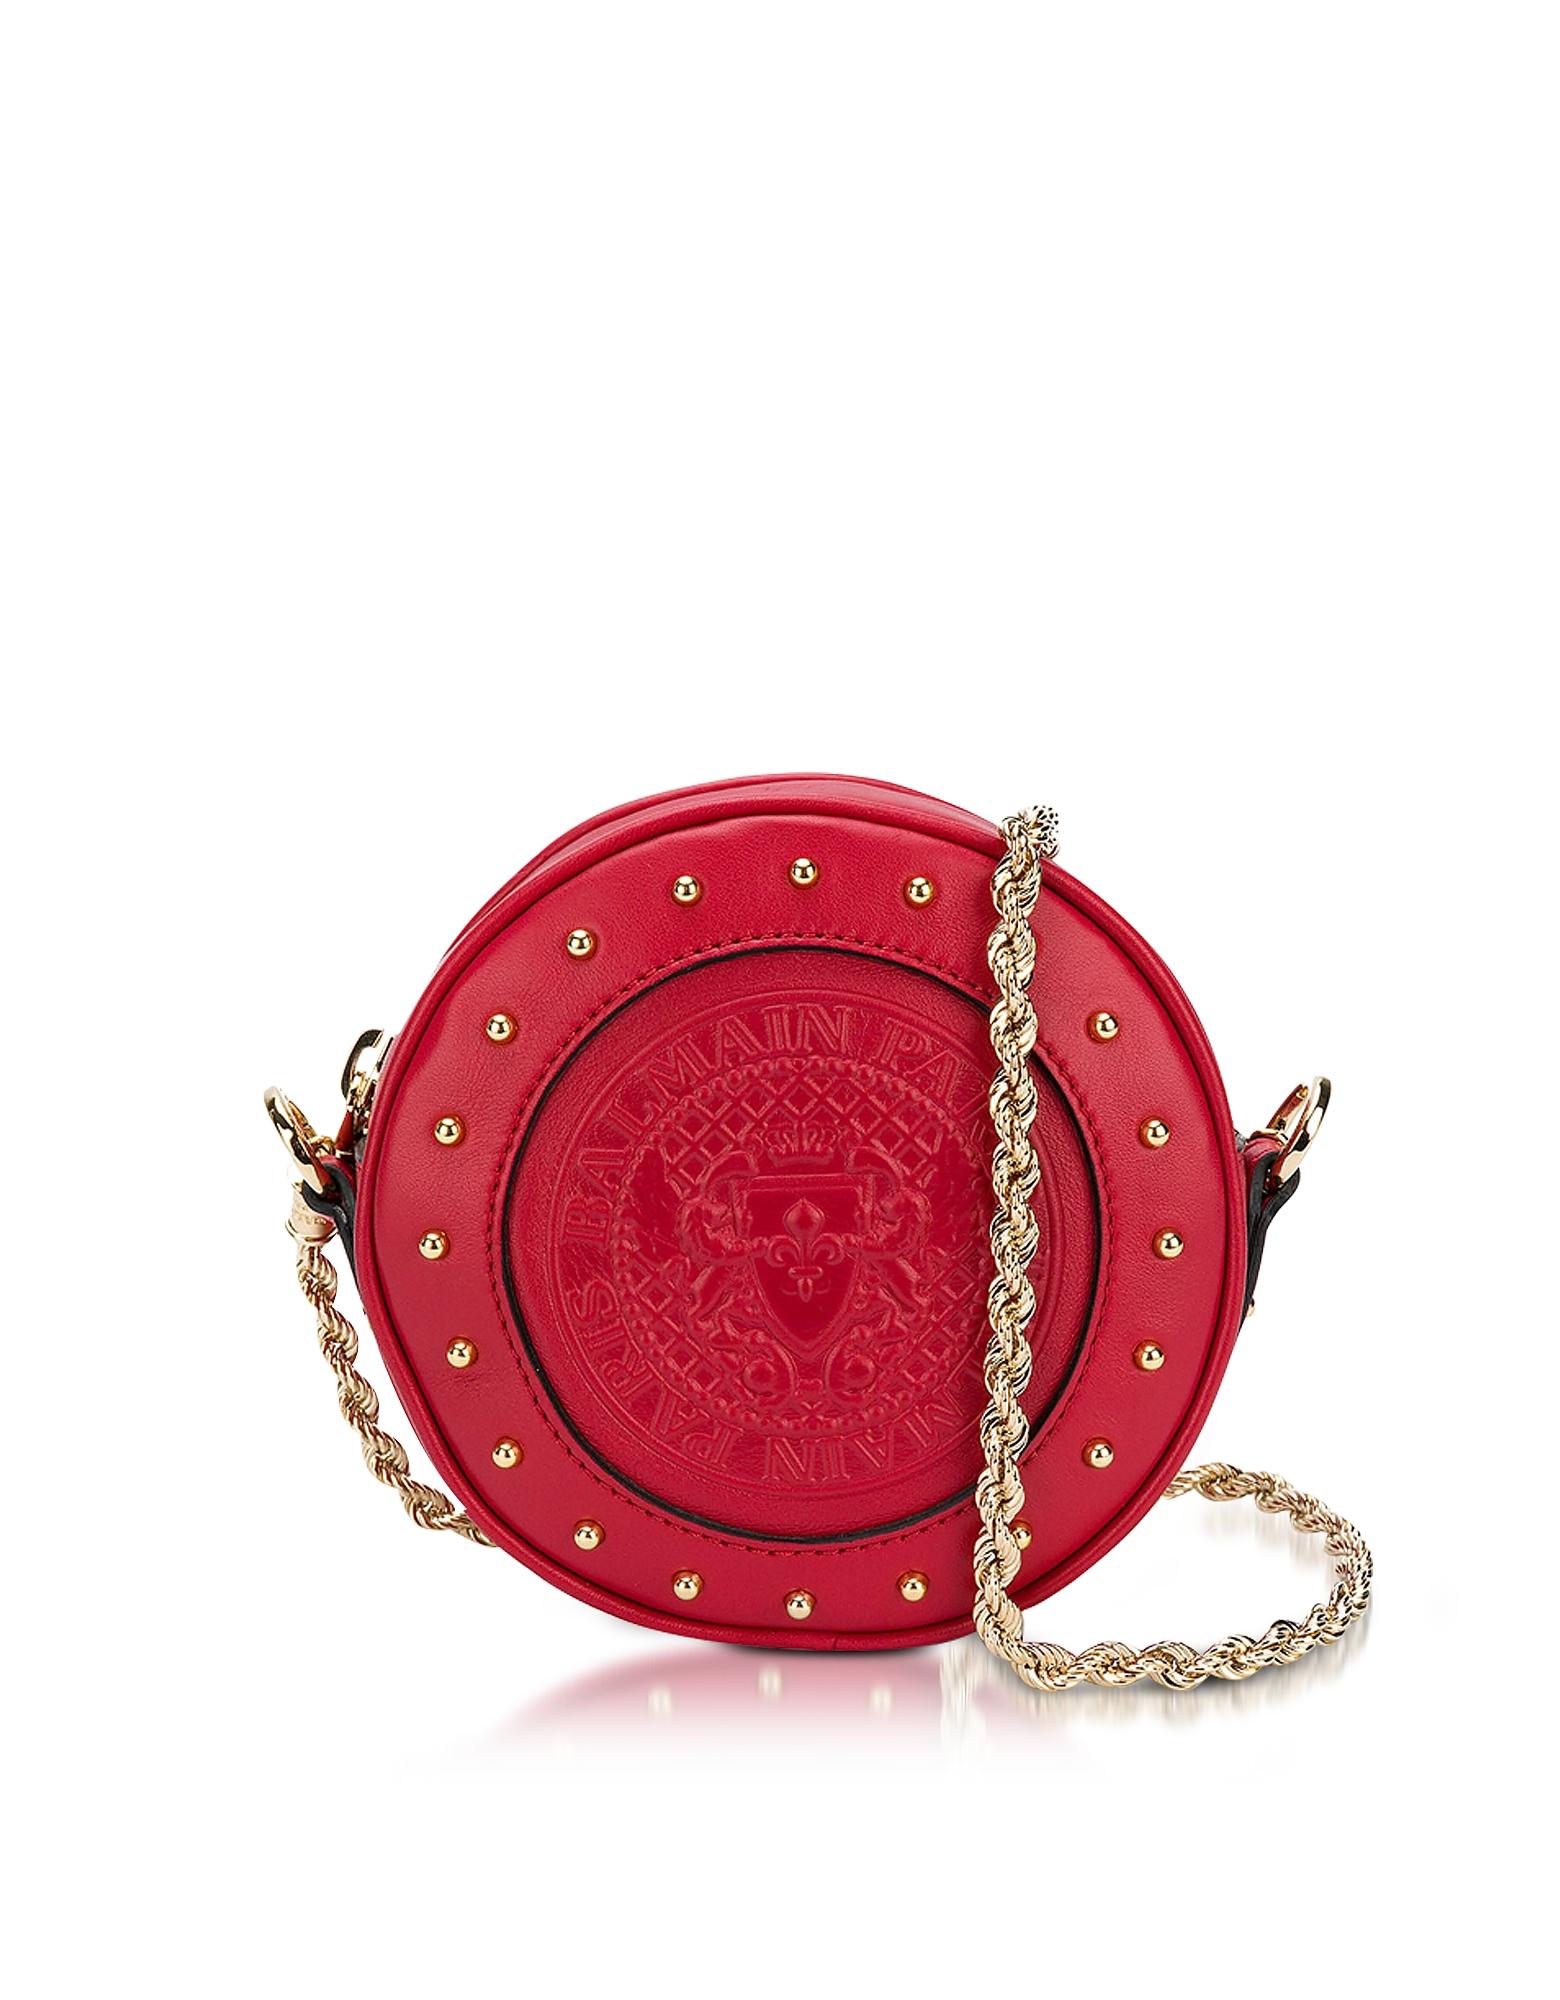 Balmain Handbags, Renaissance Red Smooth Leather Mini Disco Bag w/Embossed Blazon